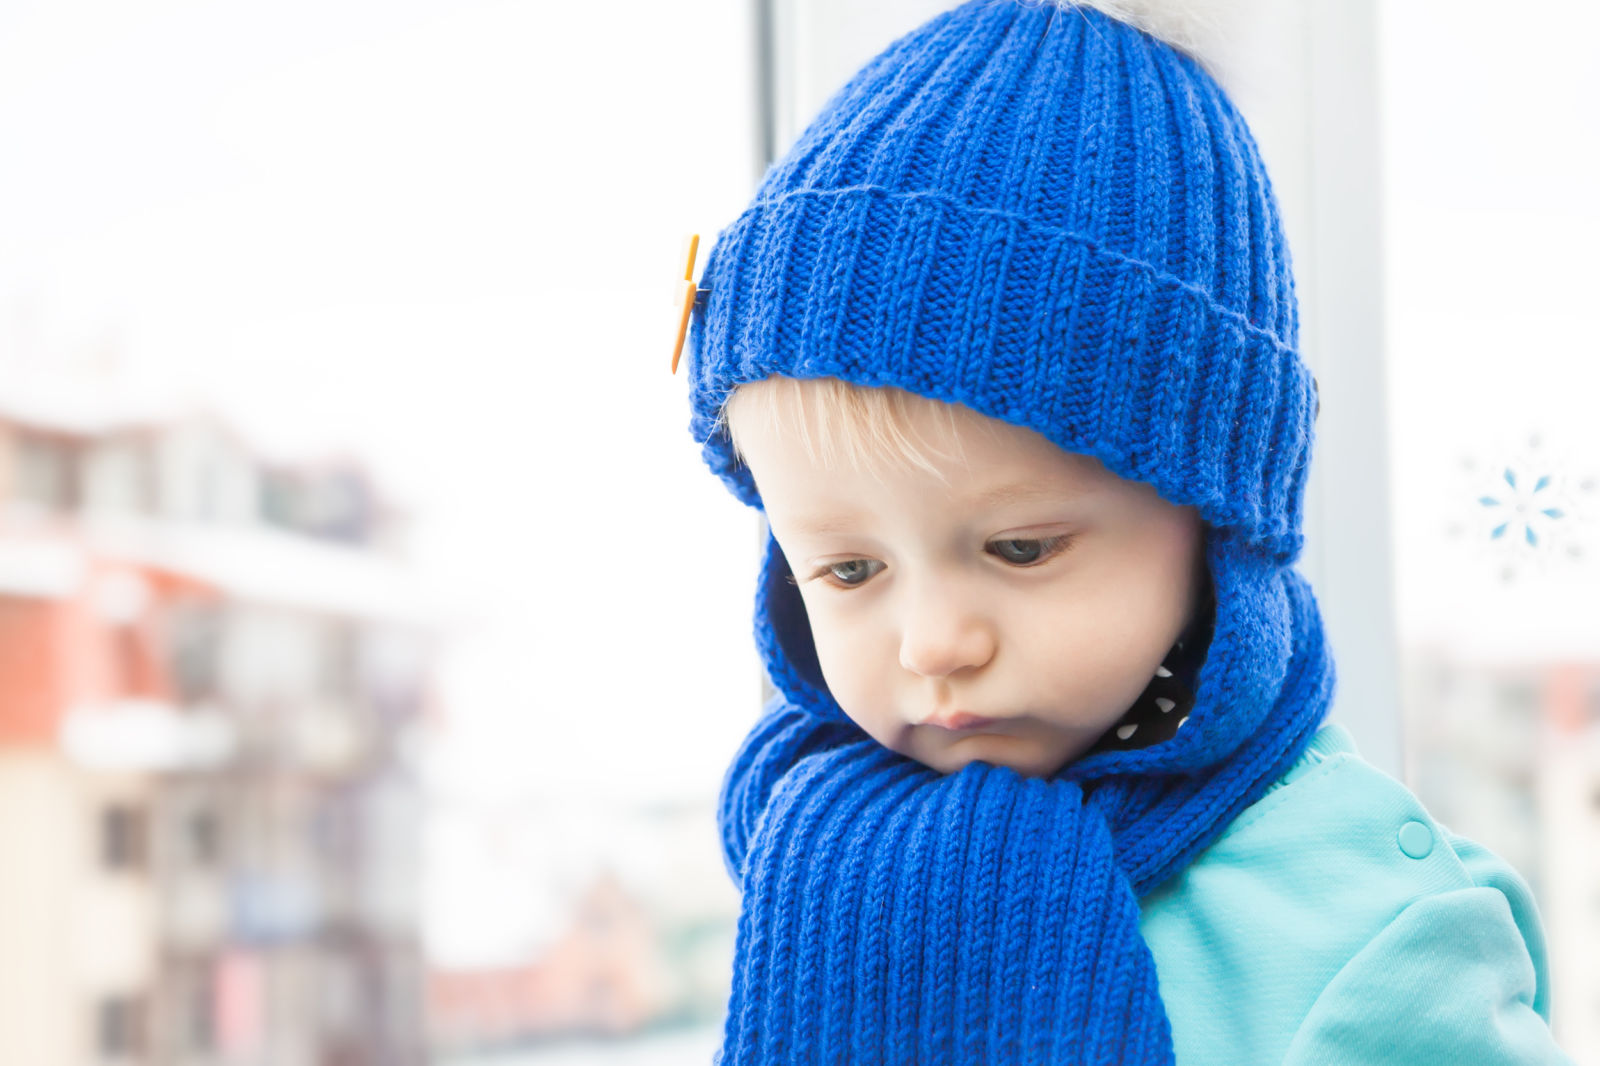 Young Child in Scarf and Hat